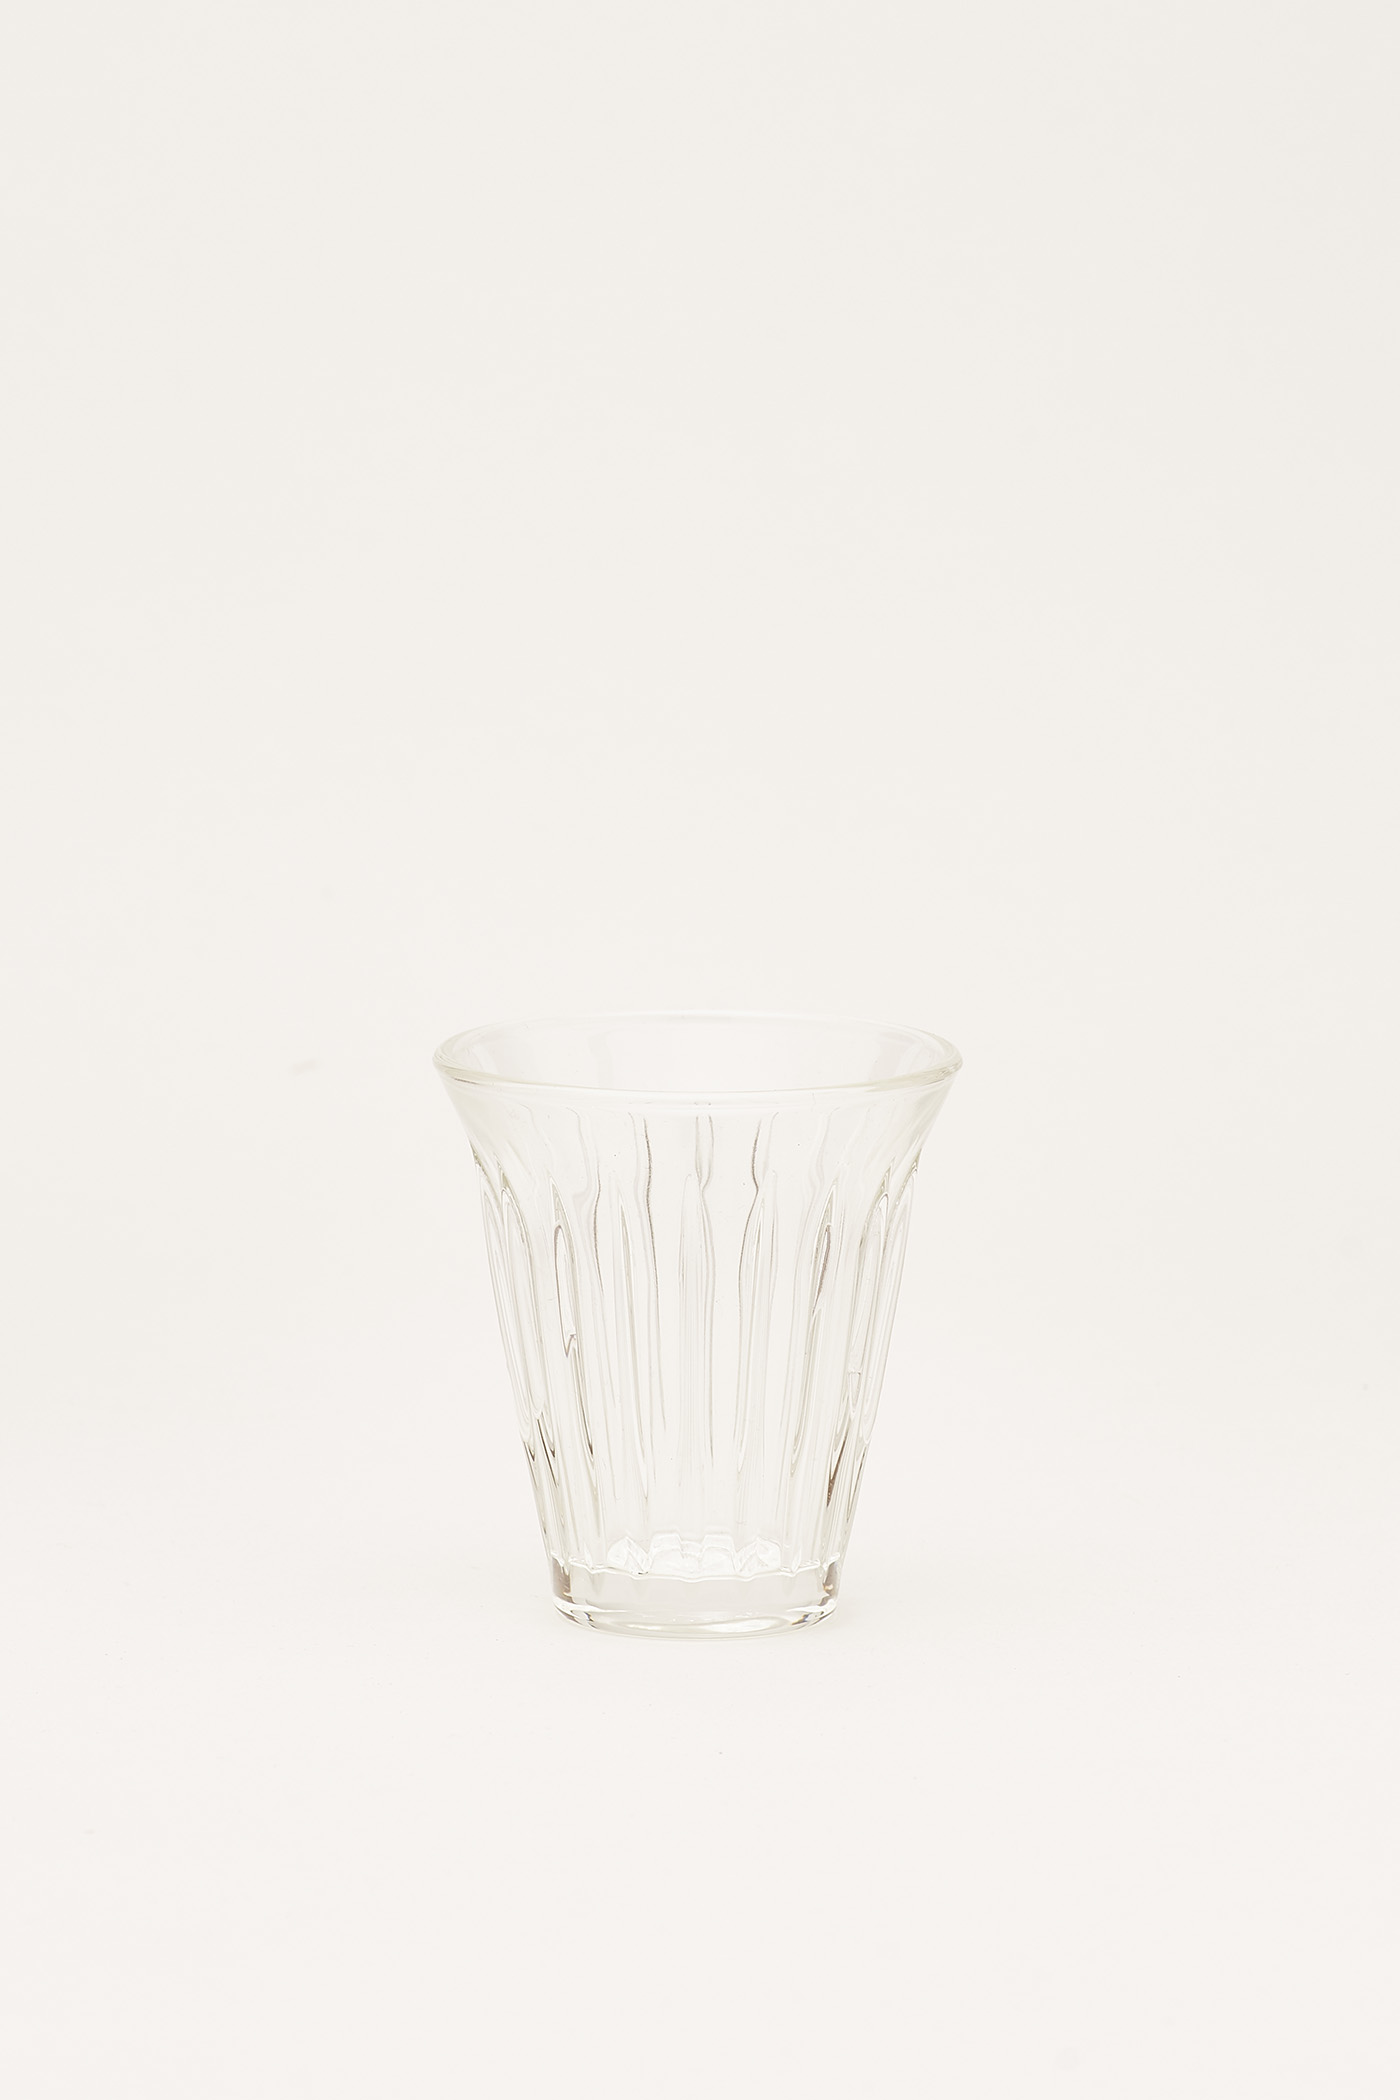 La Rochere Glass Tumbler